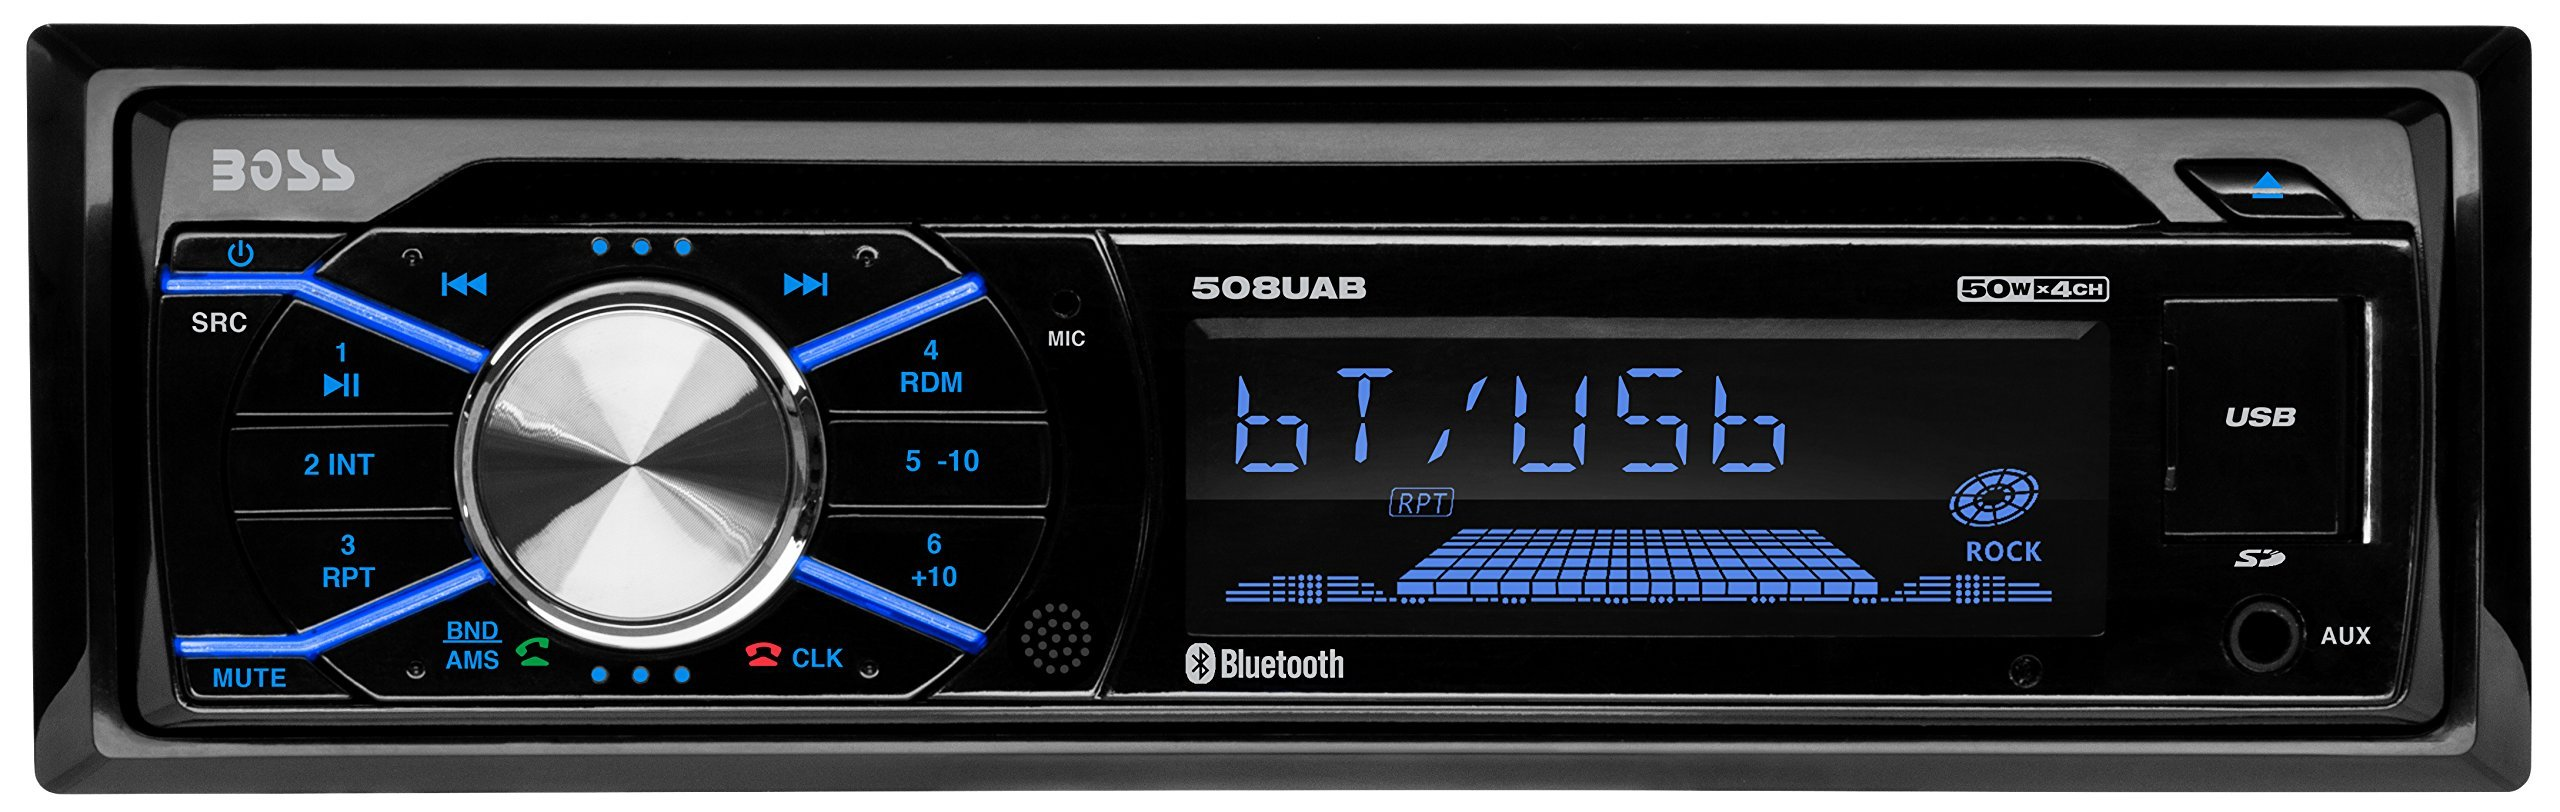 BOSS Audio 508UAB Single Din, Bluetooth, CD/MP3/WMS/USB/SD AM/FM Car Stereo, Wireless Remote (Certified Refurbished) by BOSS Audio (Image #1)